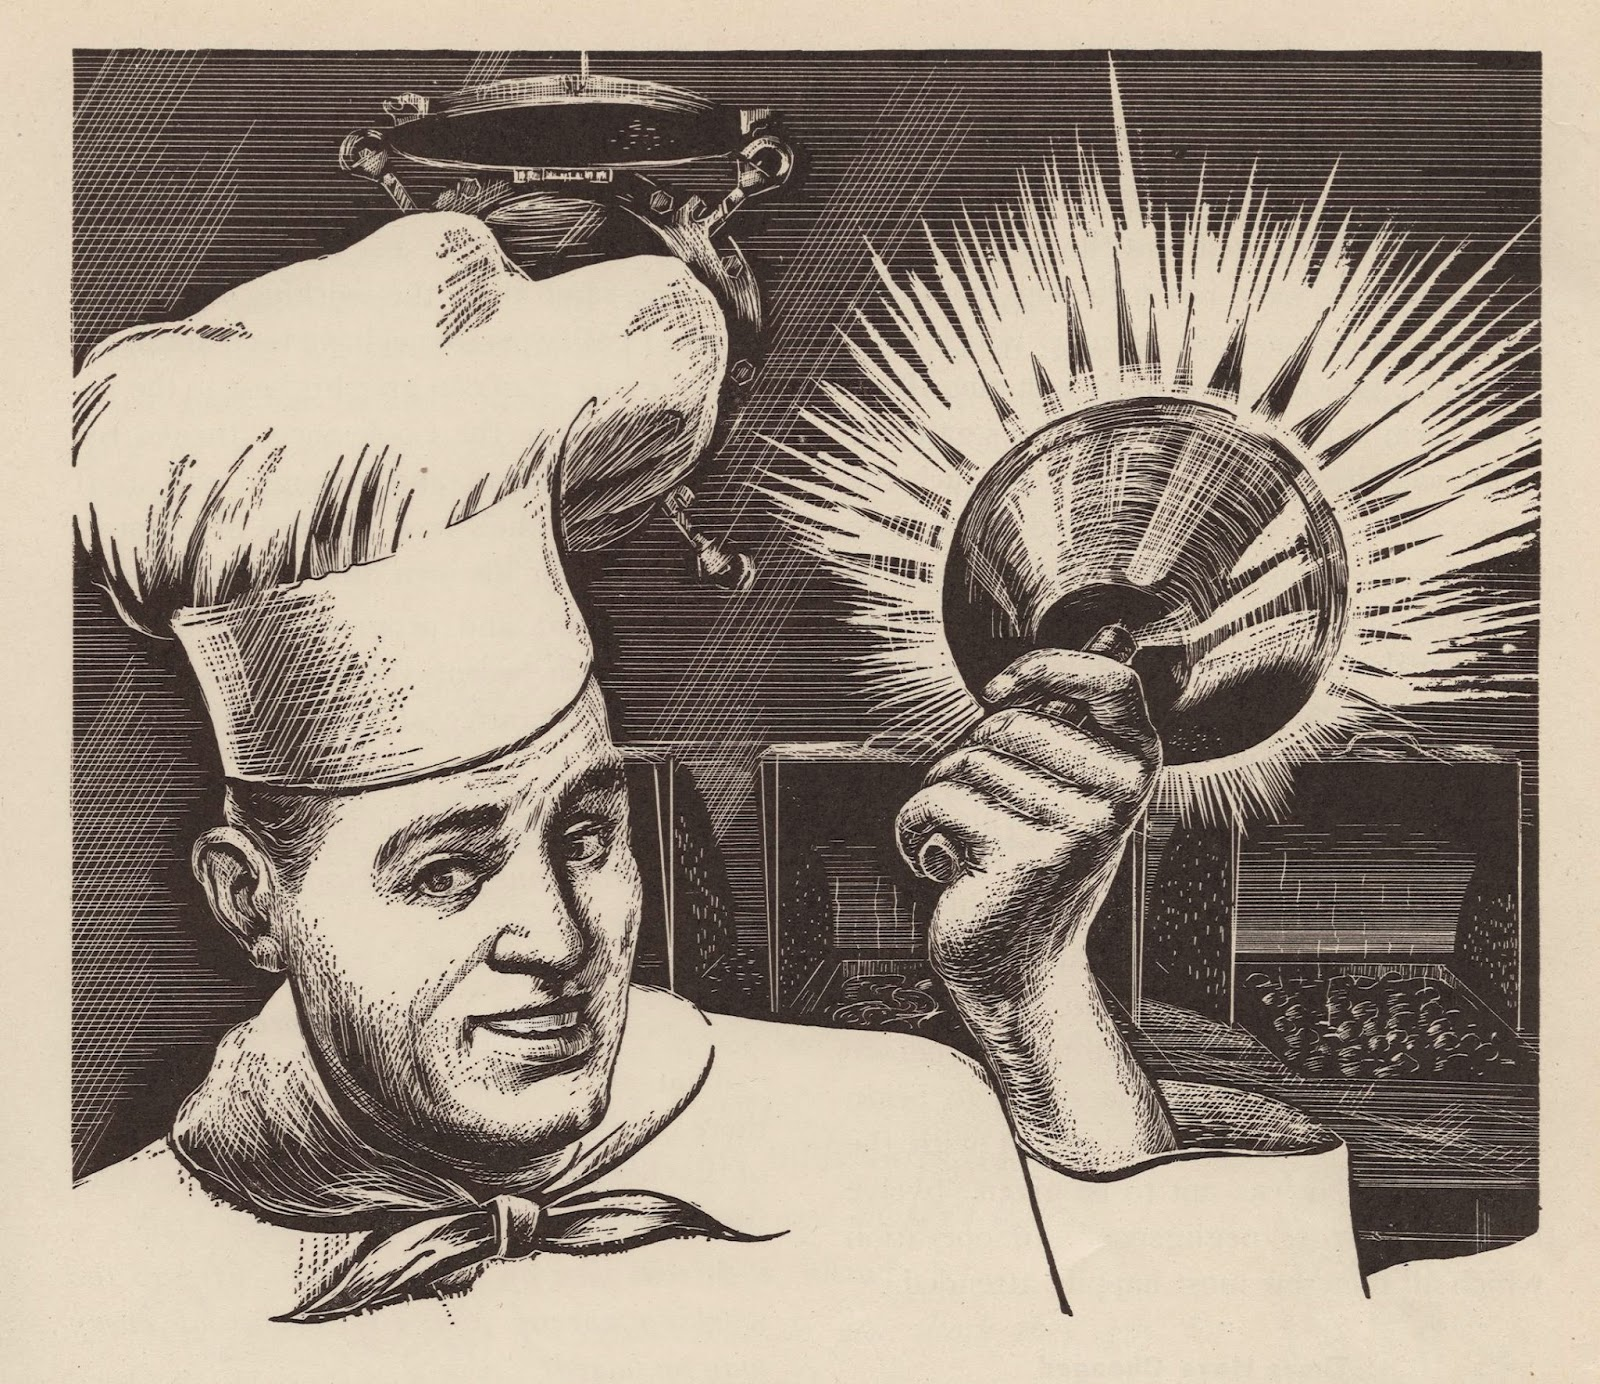 Illustration of man in chef's hat ringing a dinner bell